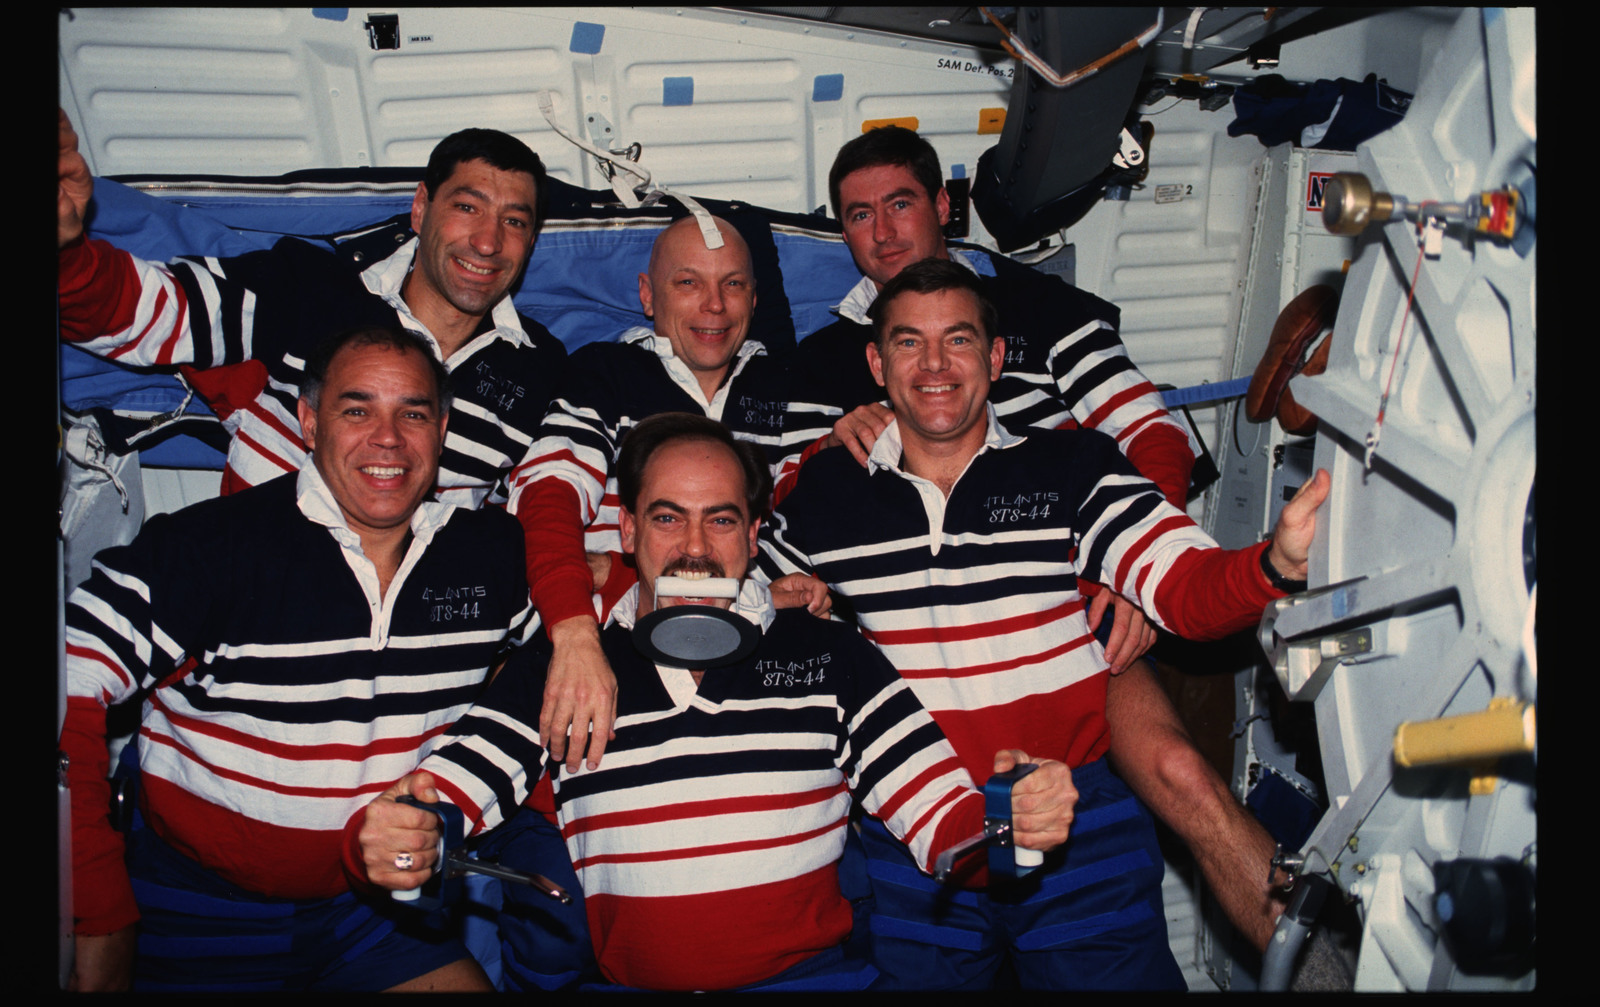 STS044-17-030 - STS-044 - STS-44 onboard (in-space) crew portrait features ``Trash Man`` Hennen